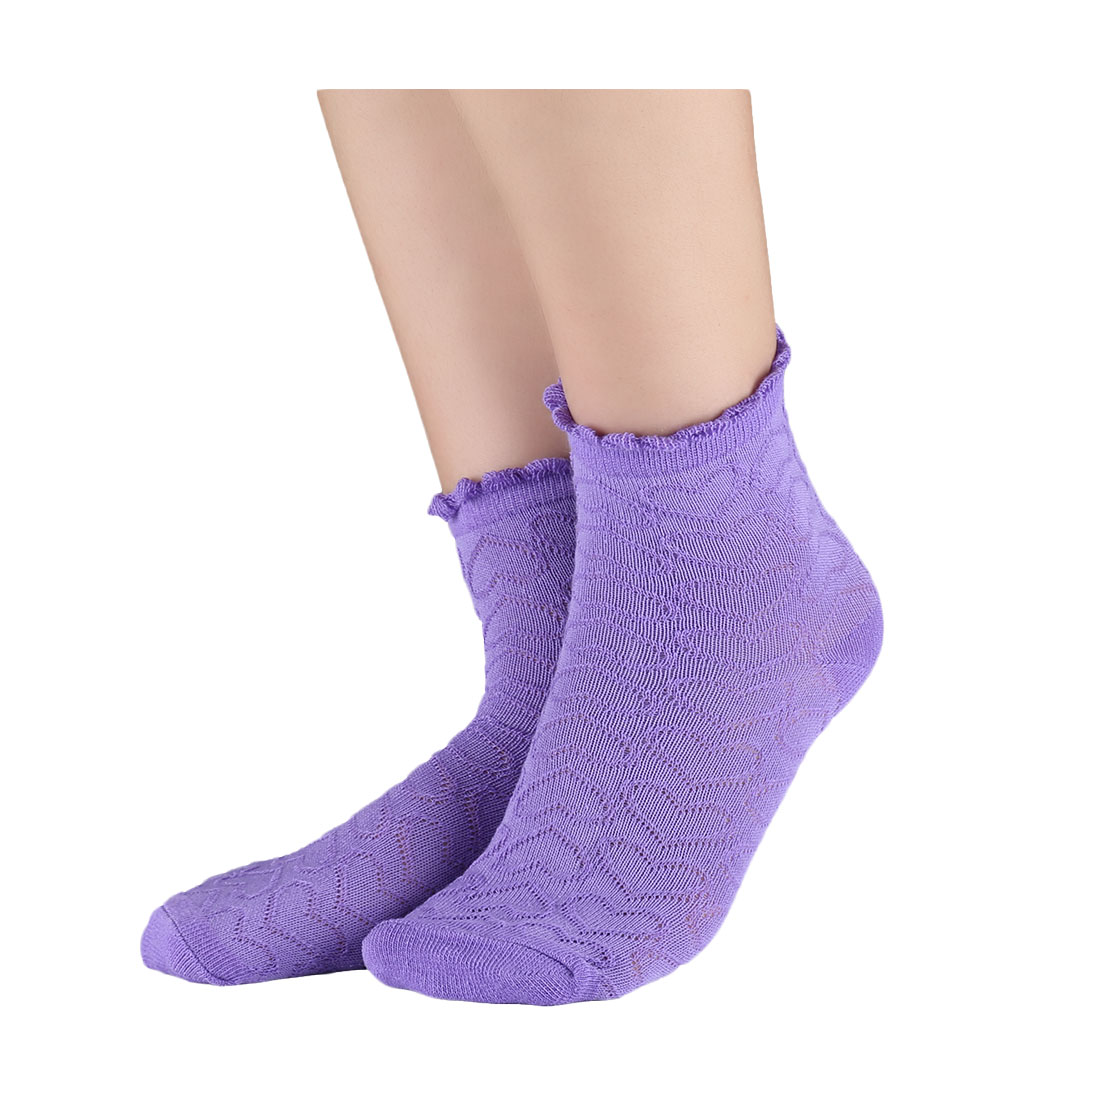 Kids Boys Girls Hearts Embroidery Cotton No Show Socks 10 Pack 5-10T Purple